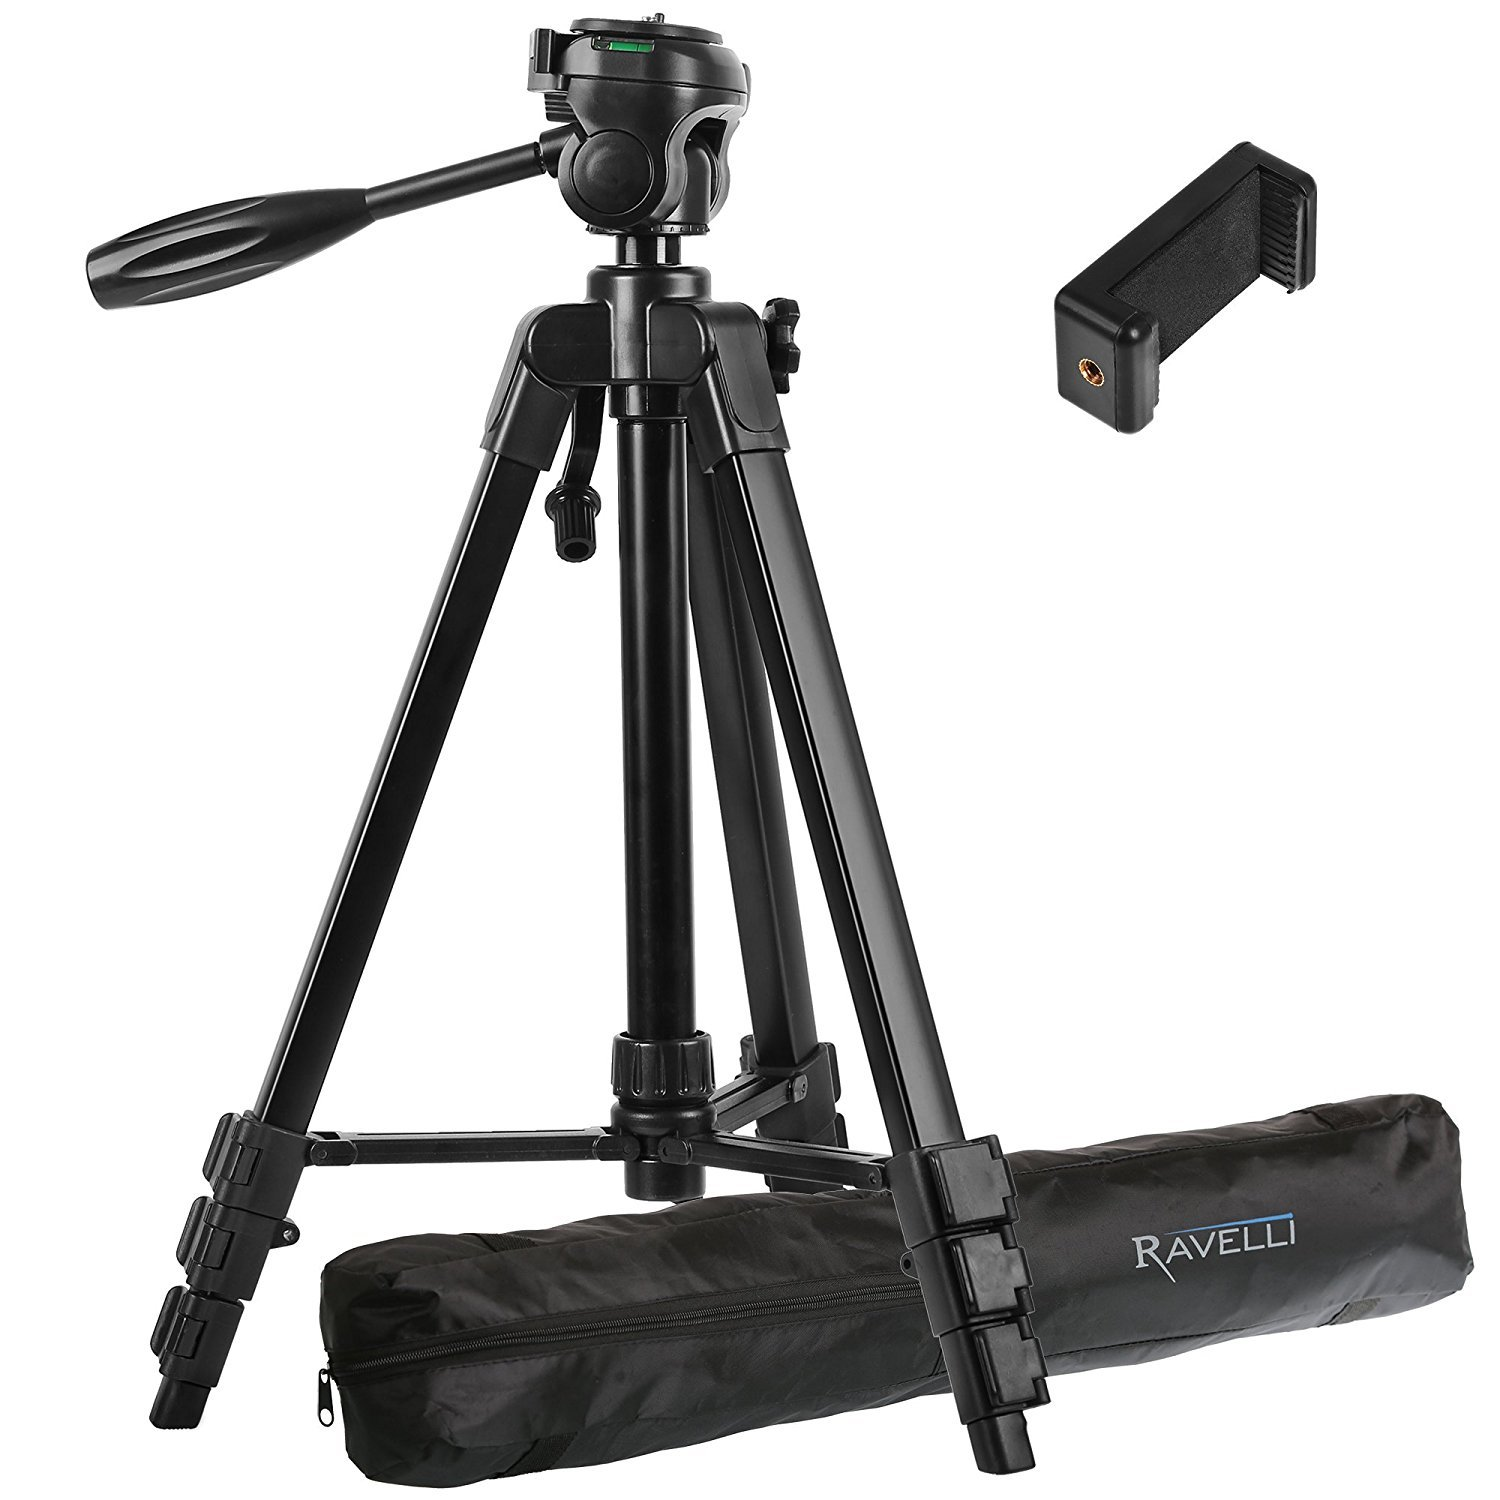 Ravelli Light Weight Aluminum Tripod with Universal Smartphone Mount